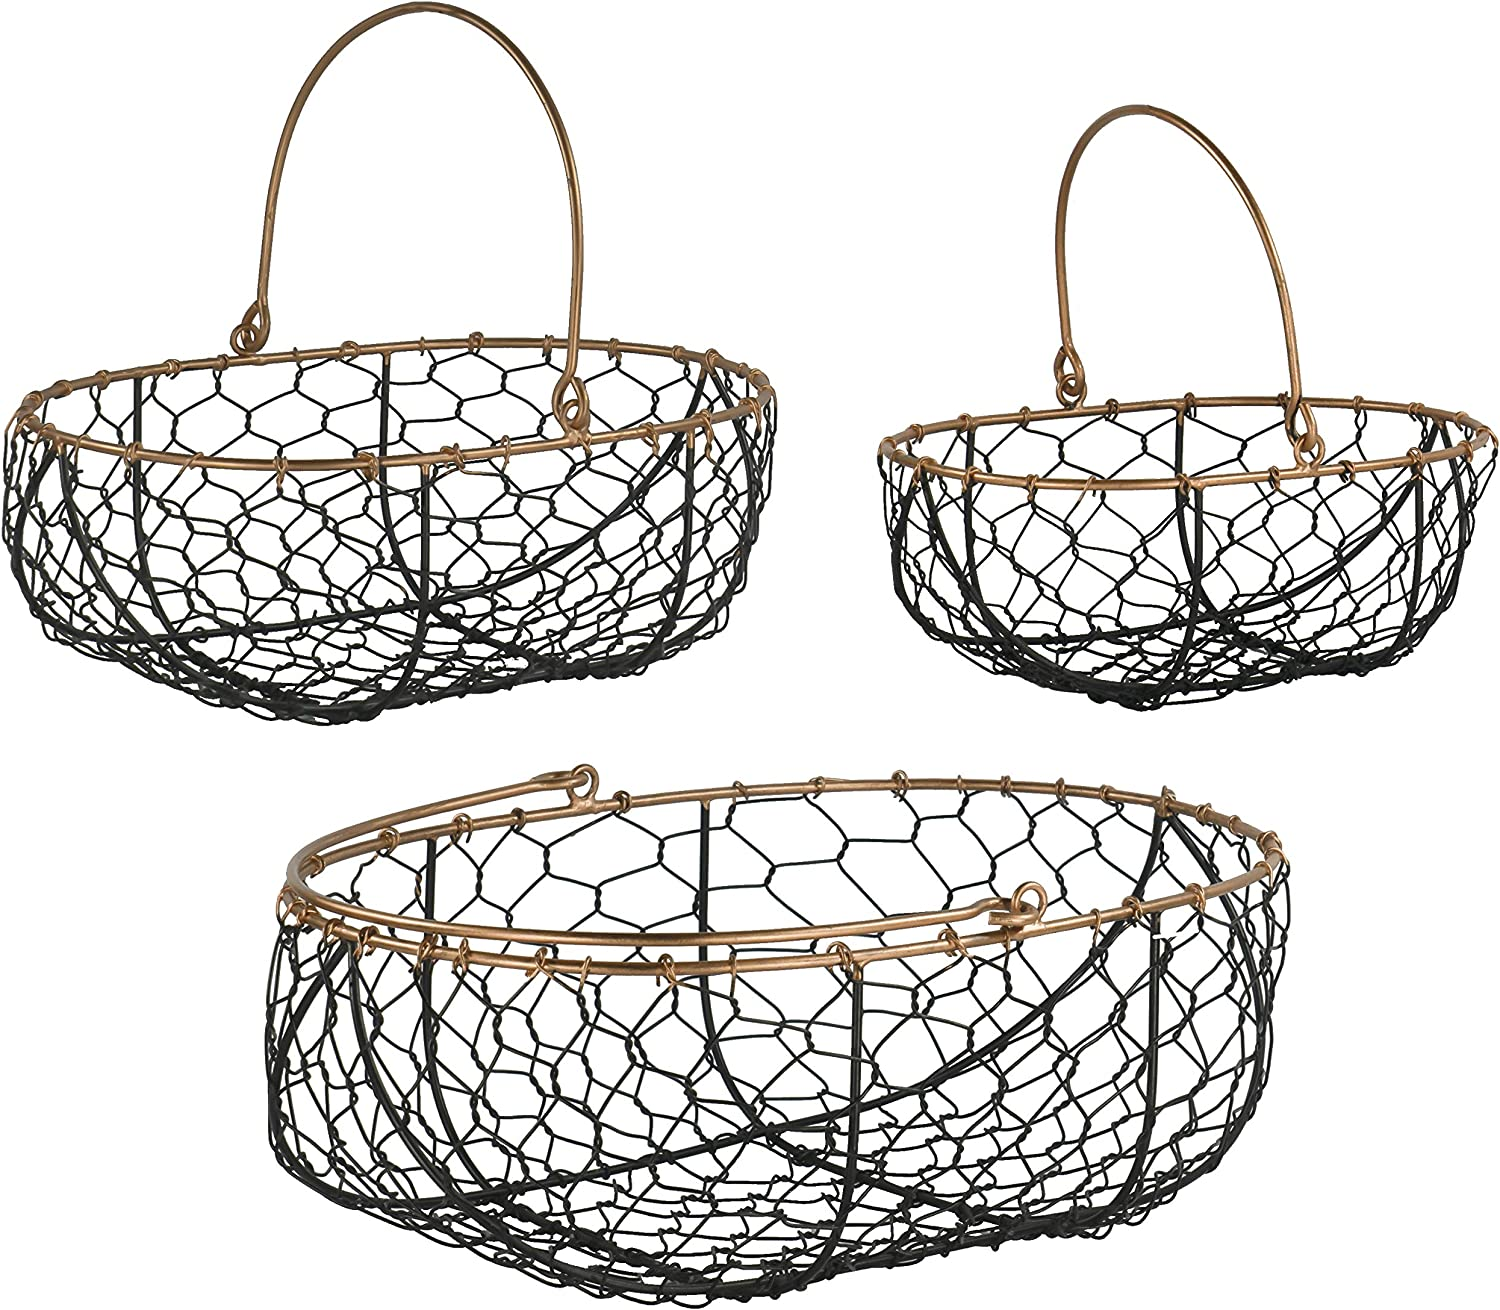 Red Co. Farmhouse Decor Metal Wire Gathering Basket Storage Organizers with Handles for Home, Kitchen, Cabinets, Bathroom, Set of 3